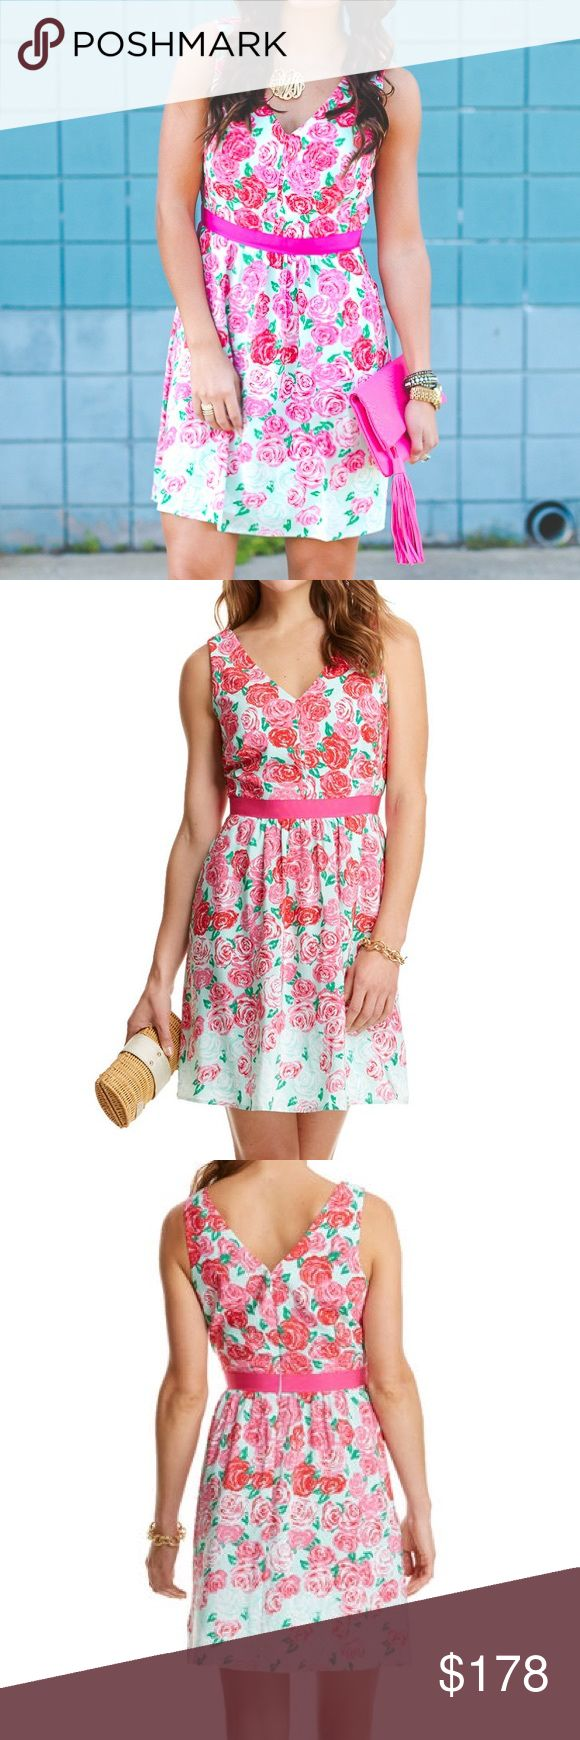 "Run For The Roses Wintermint Dress A Derby stunner! This pure silk dress makes a bold—and beautiful—statement at the Kentucky Derby. Official product of the iconic race and sought after, sold out item! Fully lined. Invisible zipper at center back. Grosgrain ribbon at waist. Pockets at front. Waist {25"".} Length {36"".} Bust {34"".} *Notice: photo eight shows little, little, little hole that came from security tag. Smaller than a needle, tip of pen, etc.--not noticeable but I disclose…"